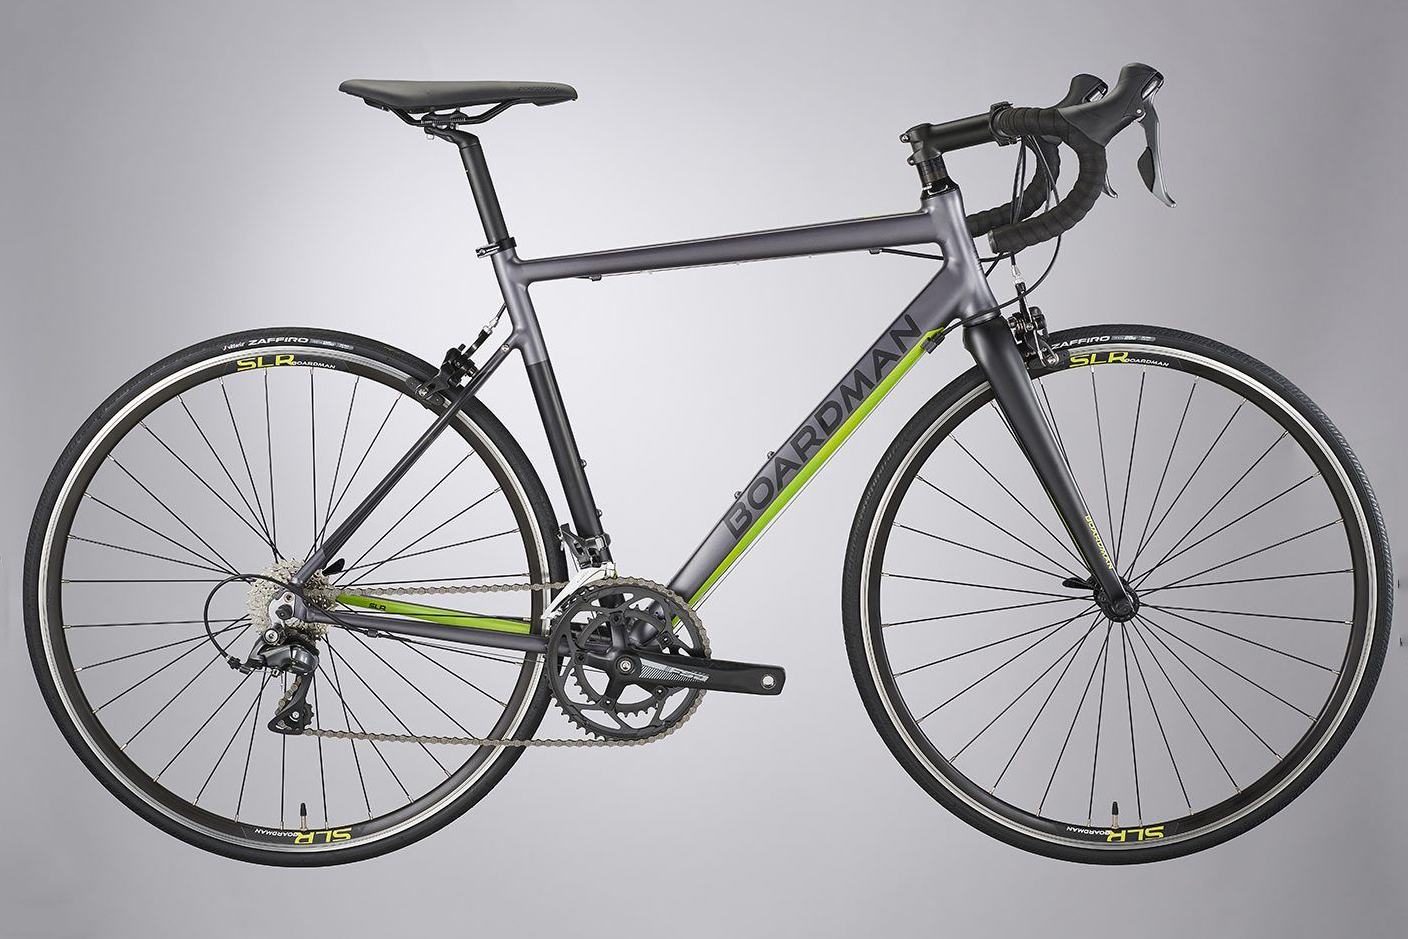 The best cheap road bikes 2019 | 9 great choices for £600 or